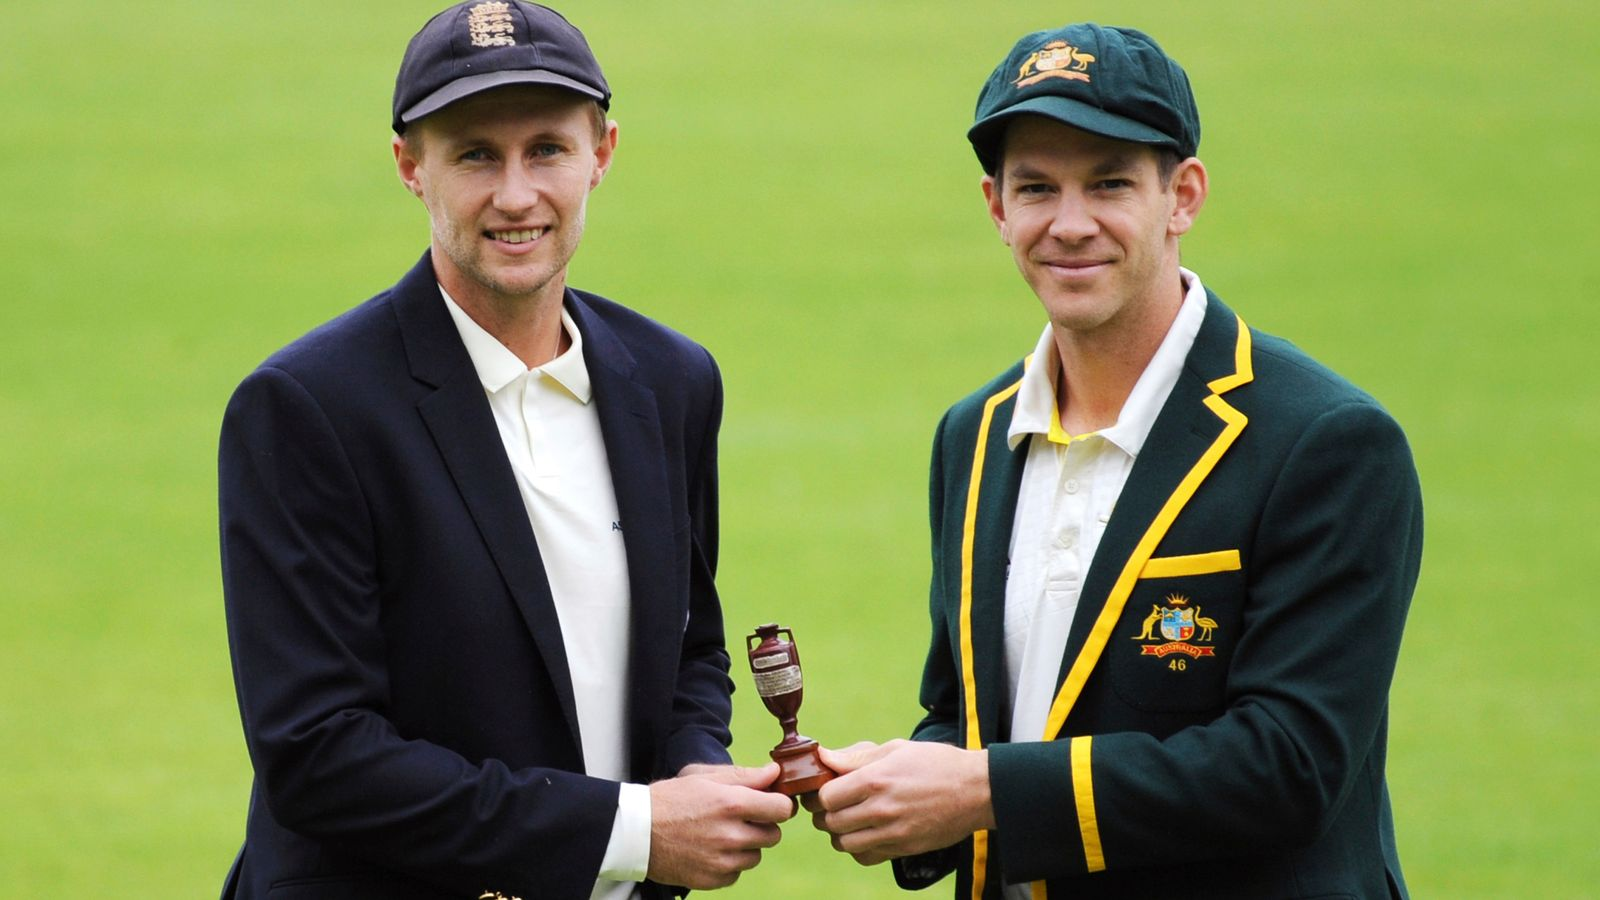 The Ashes: ECB braced for 'challenging' talks with Cricket Australia over upcoming tour